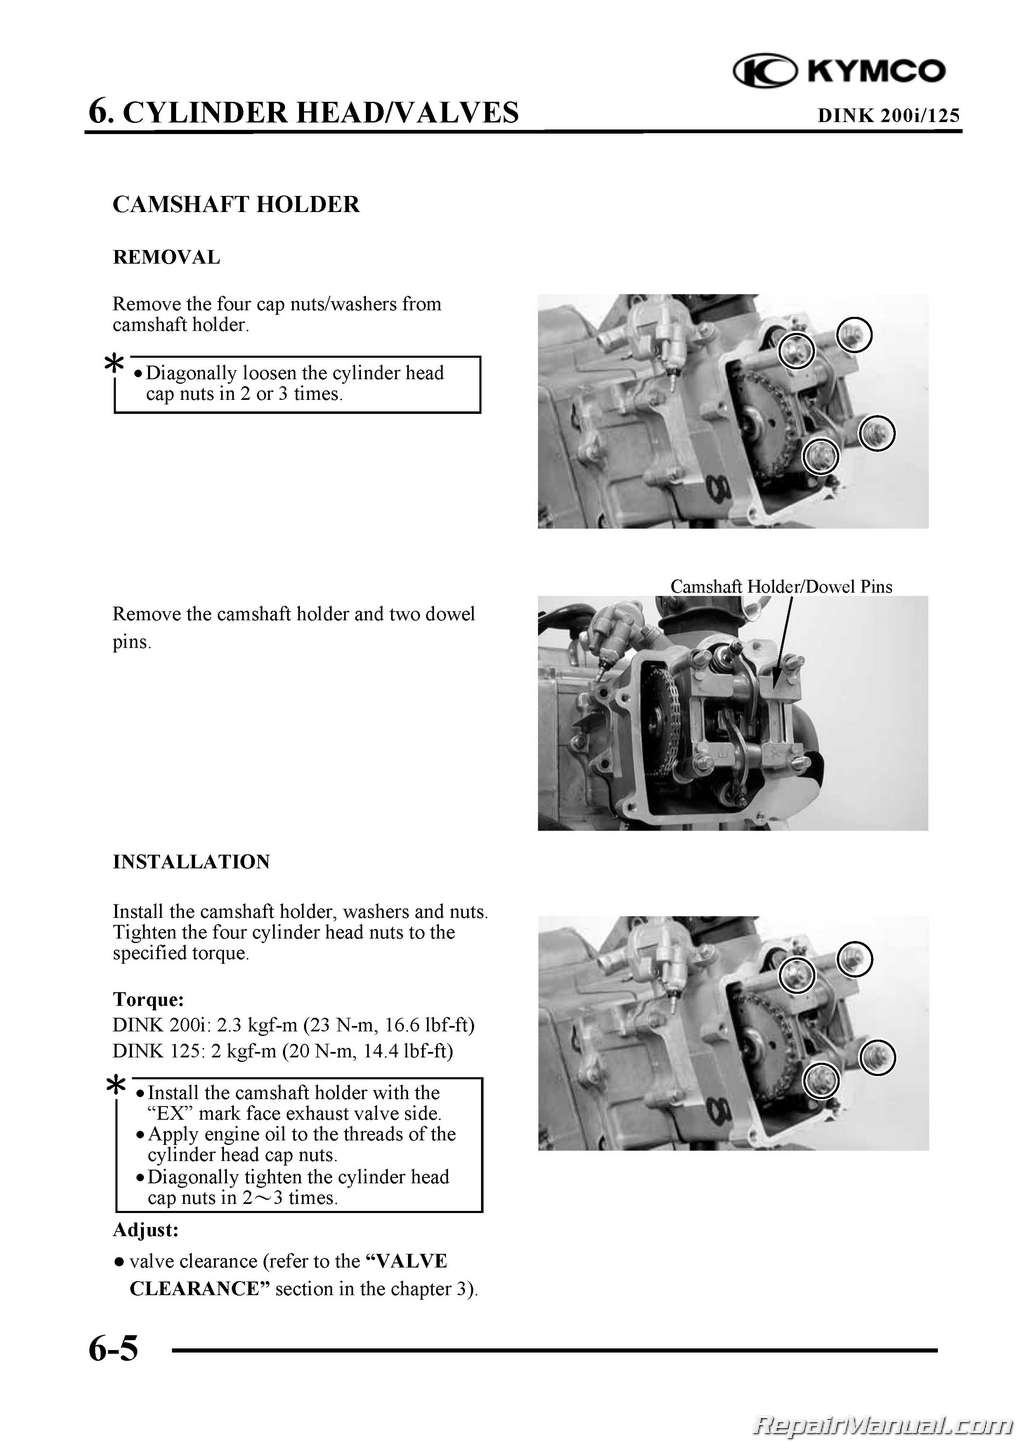 4 Stroke Motorcycle Engine Diagram Kymco Yager Dink 125cc 200cc Scooter Printed Repair Manual